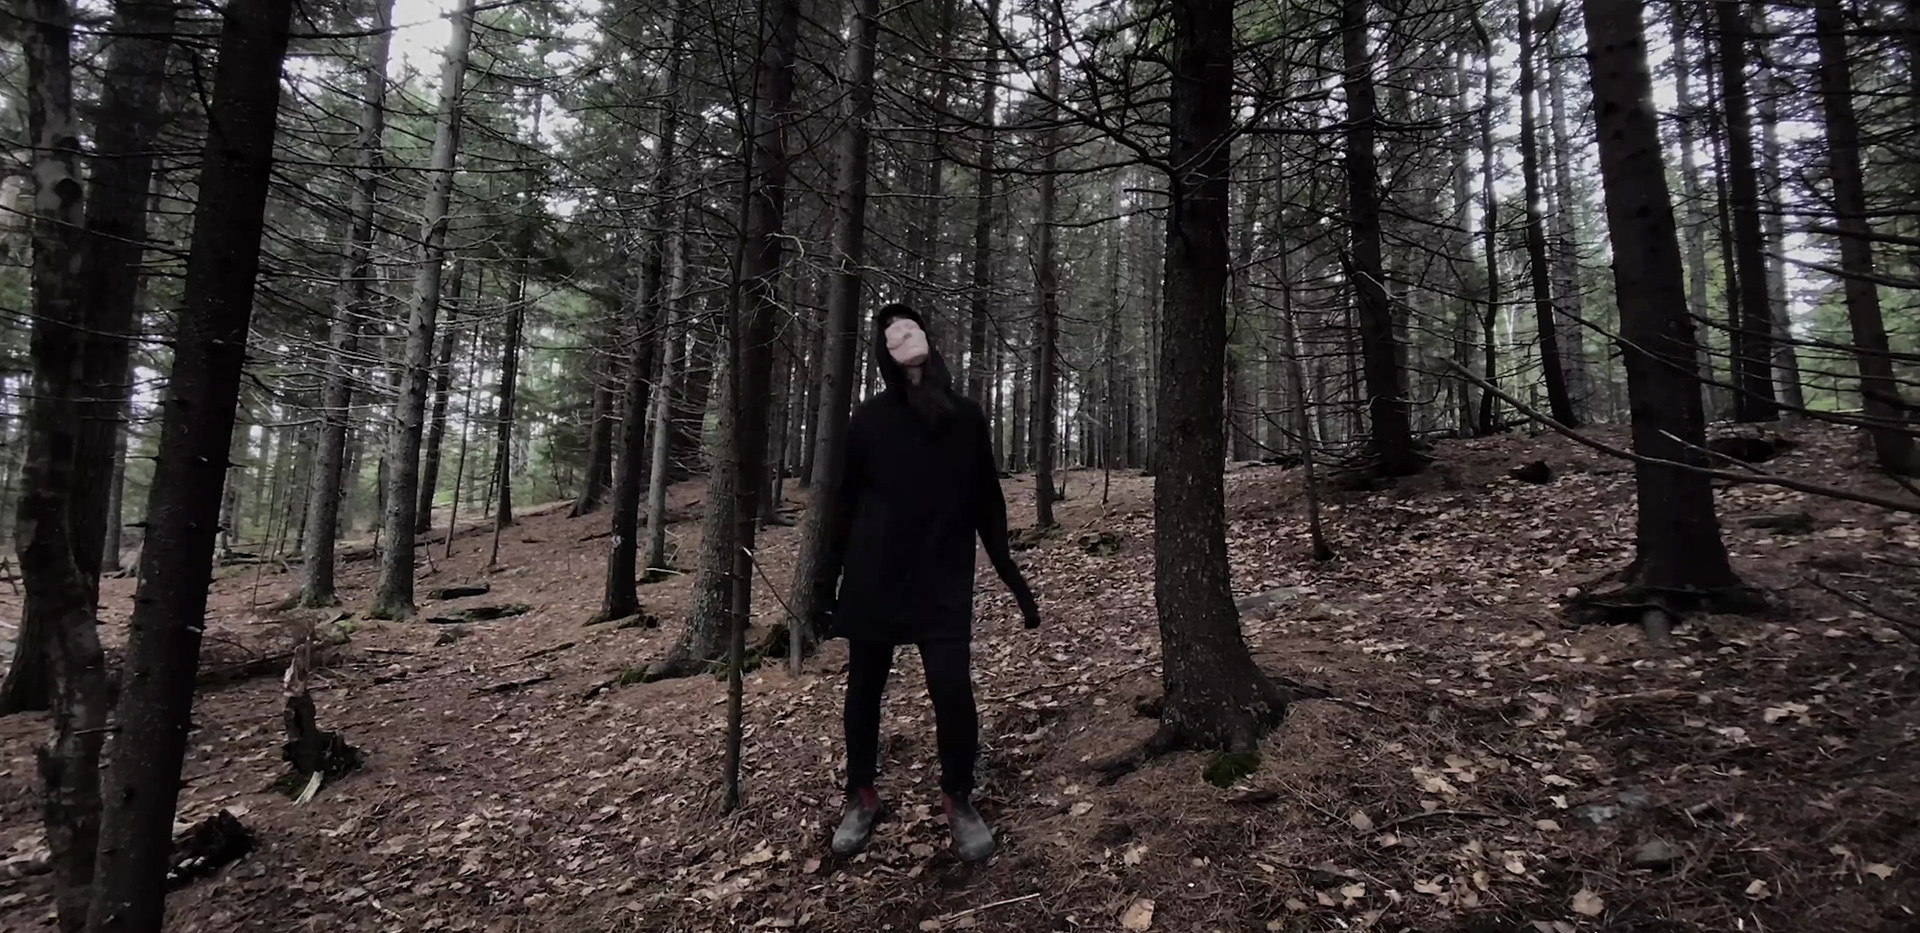 Self-Portrait (In the Woods).mp4